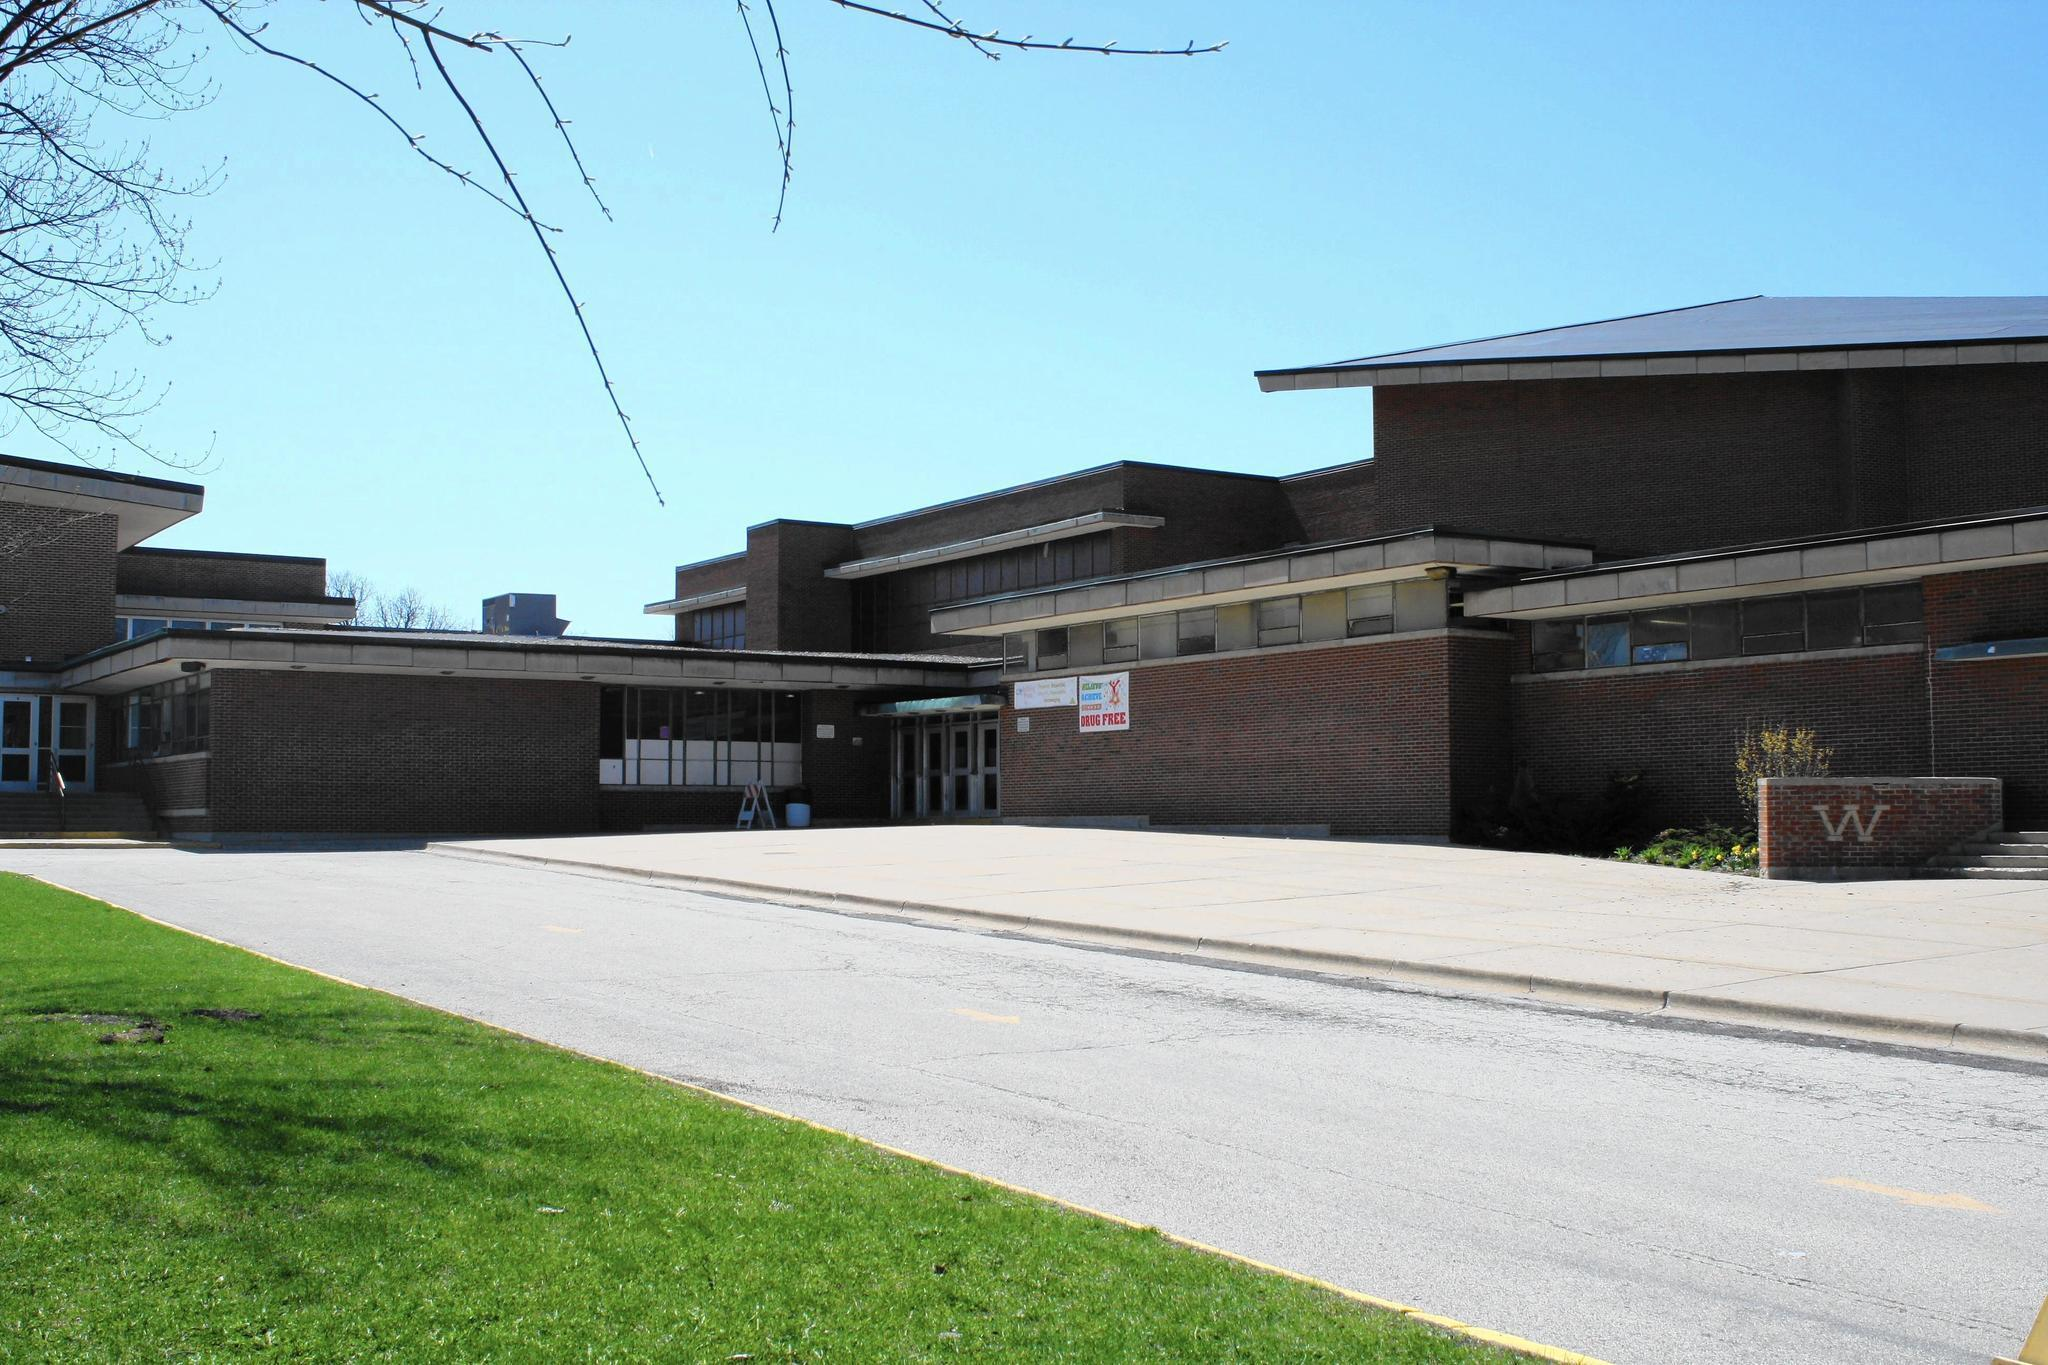 Large fight at high school, bullying incident in Waukegan ...